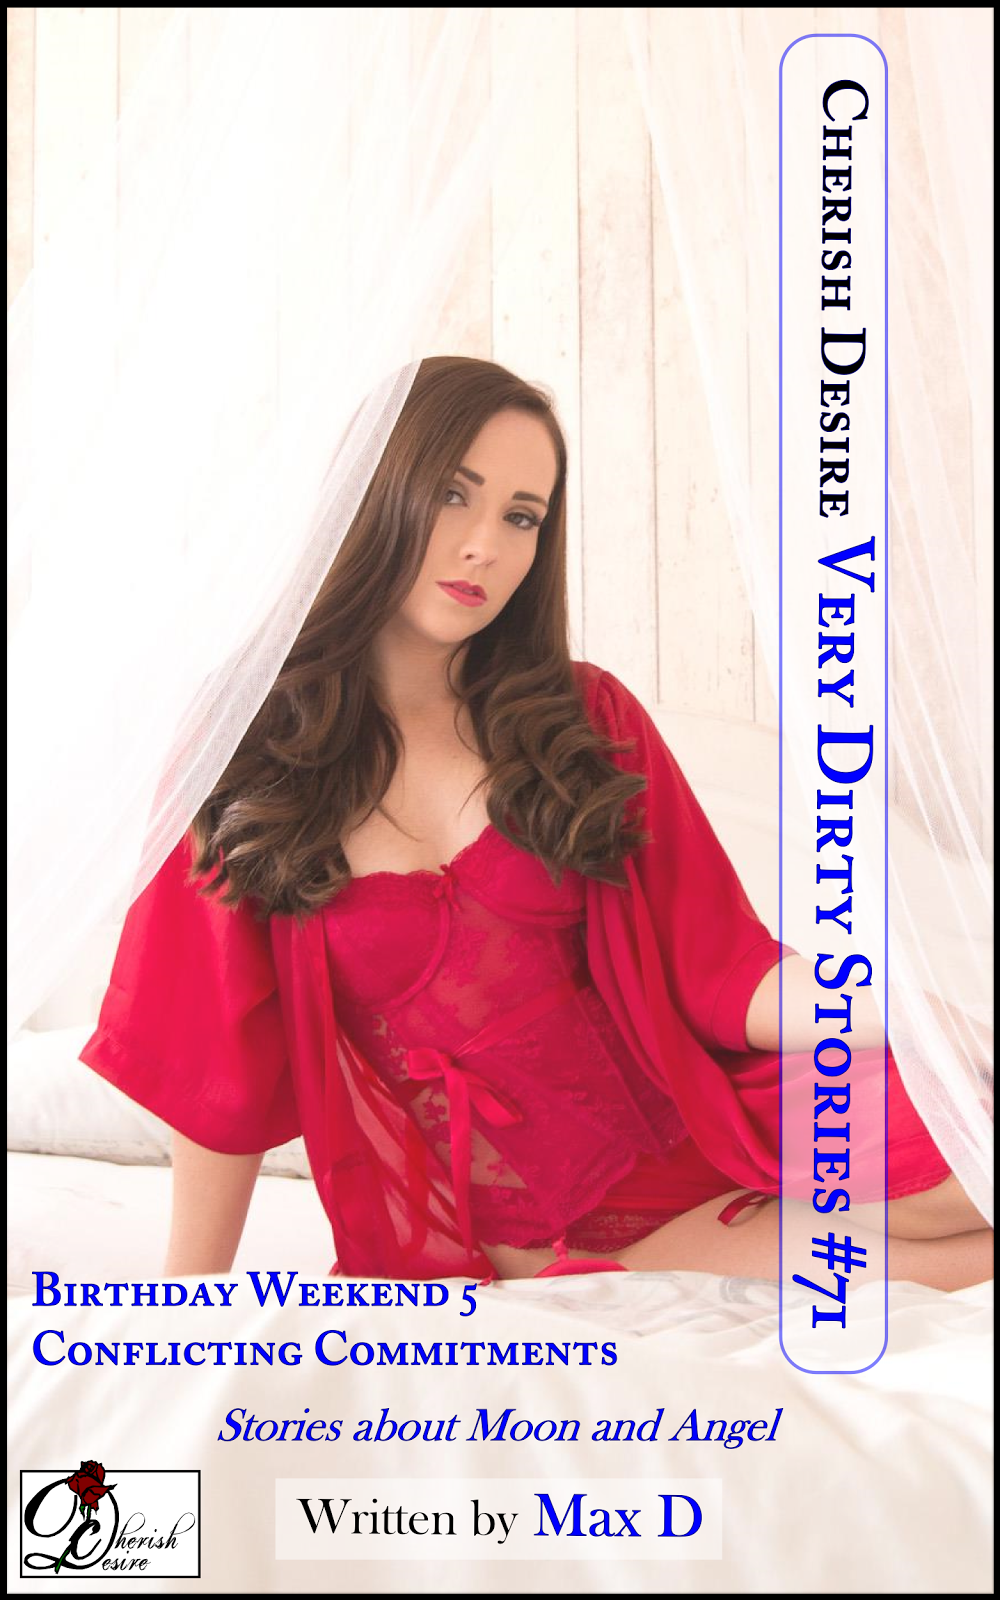 Cherish Desire: Very Dirty Stories #70, Max D, erotica